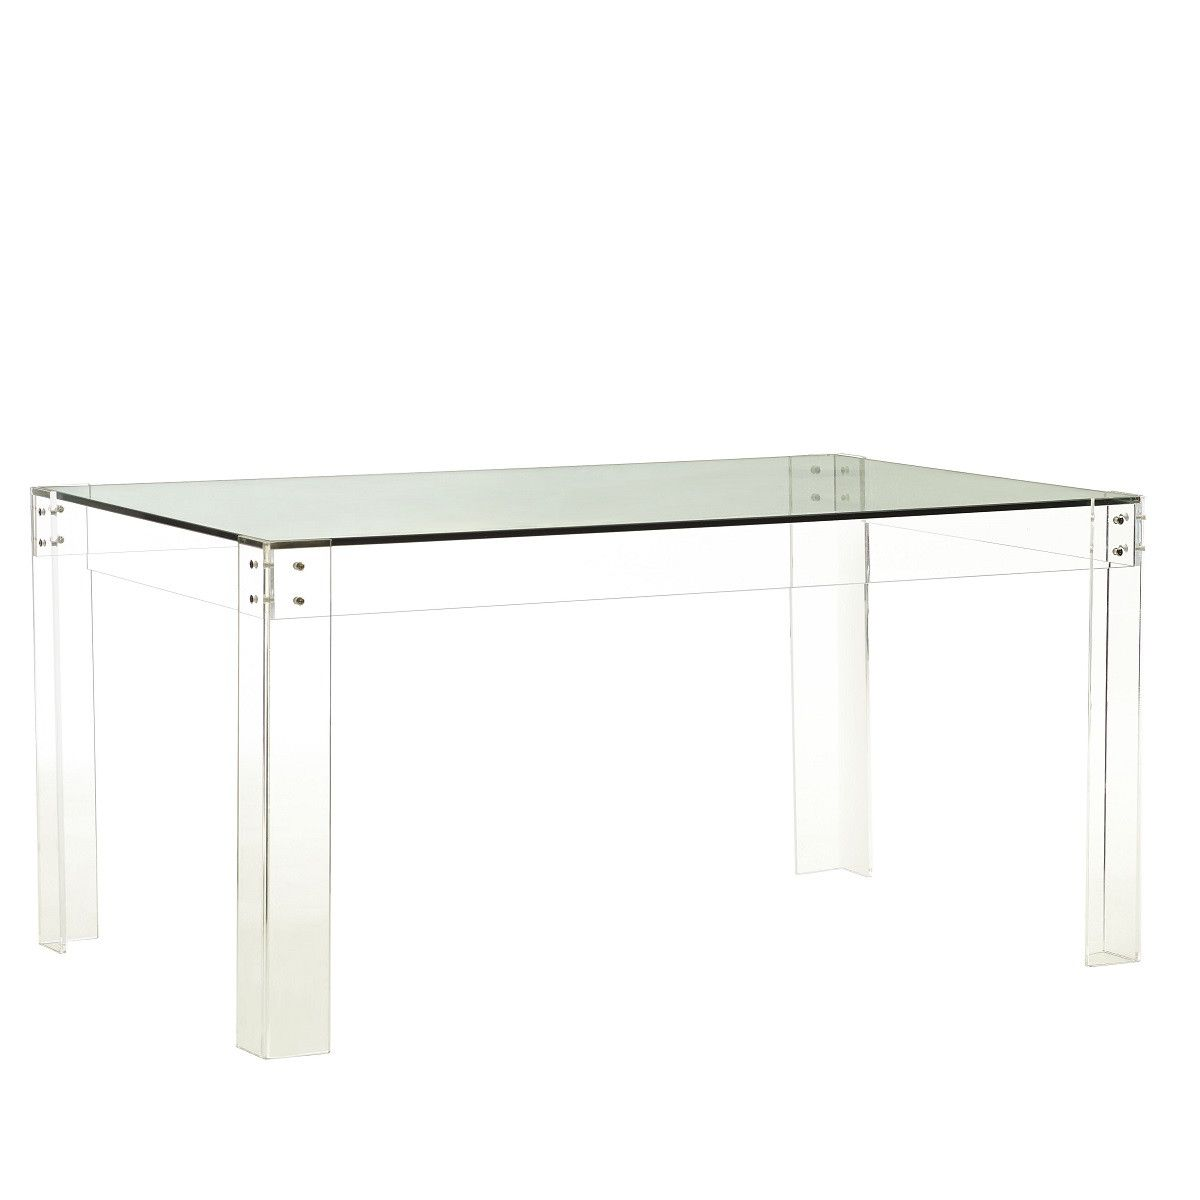 The Disappearing Dining Table Dining Room Furniture Table Wisteria Furniture Acrylic Dining Table Dining Table Chairs